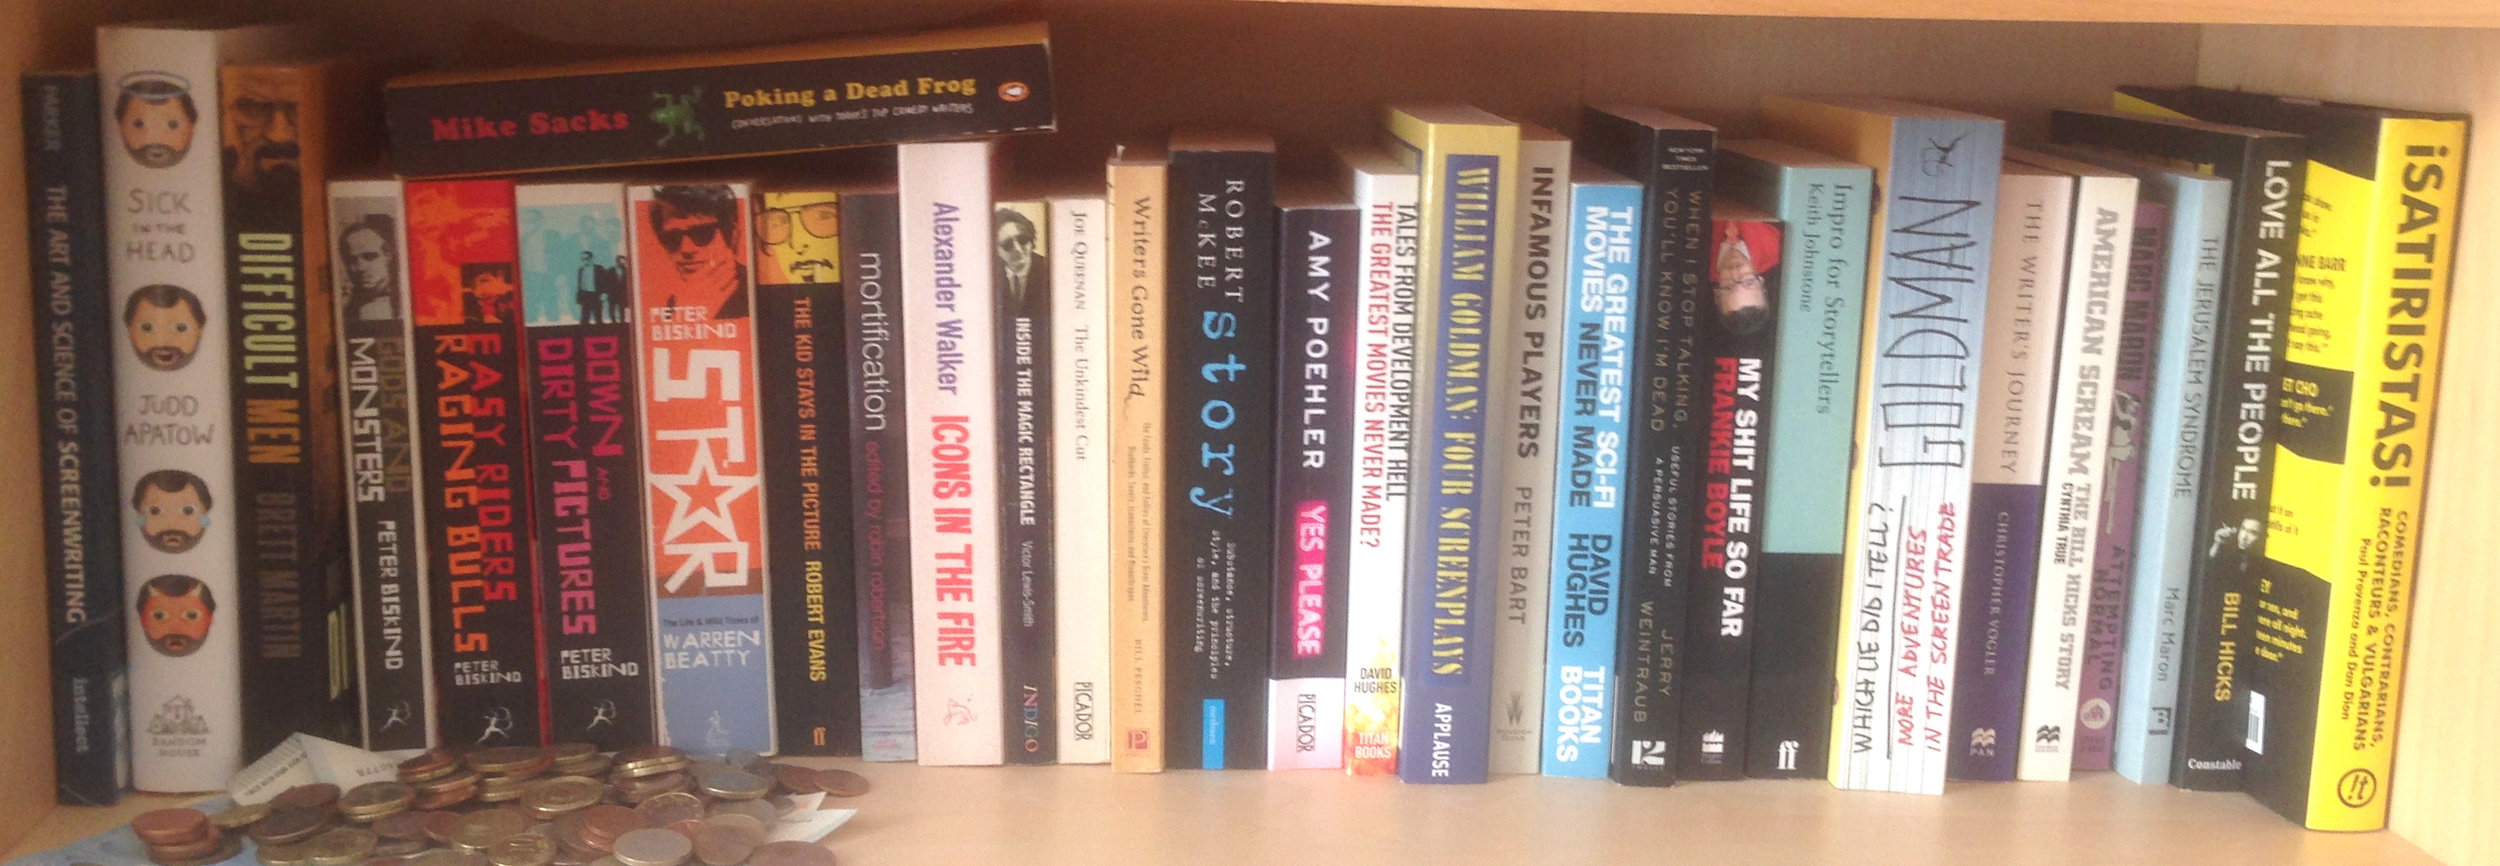 Writing Bookshelves 3.jpg